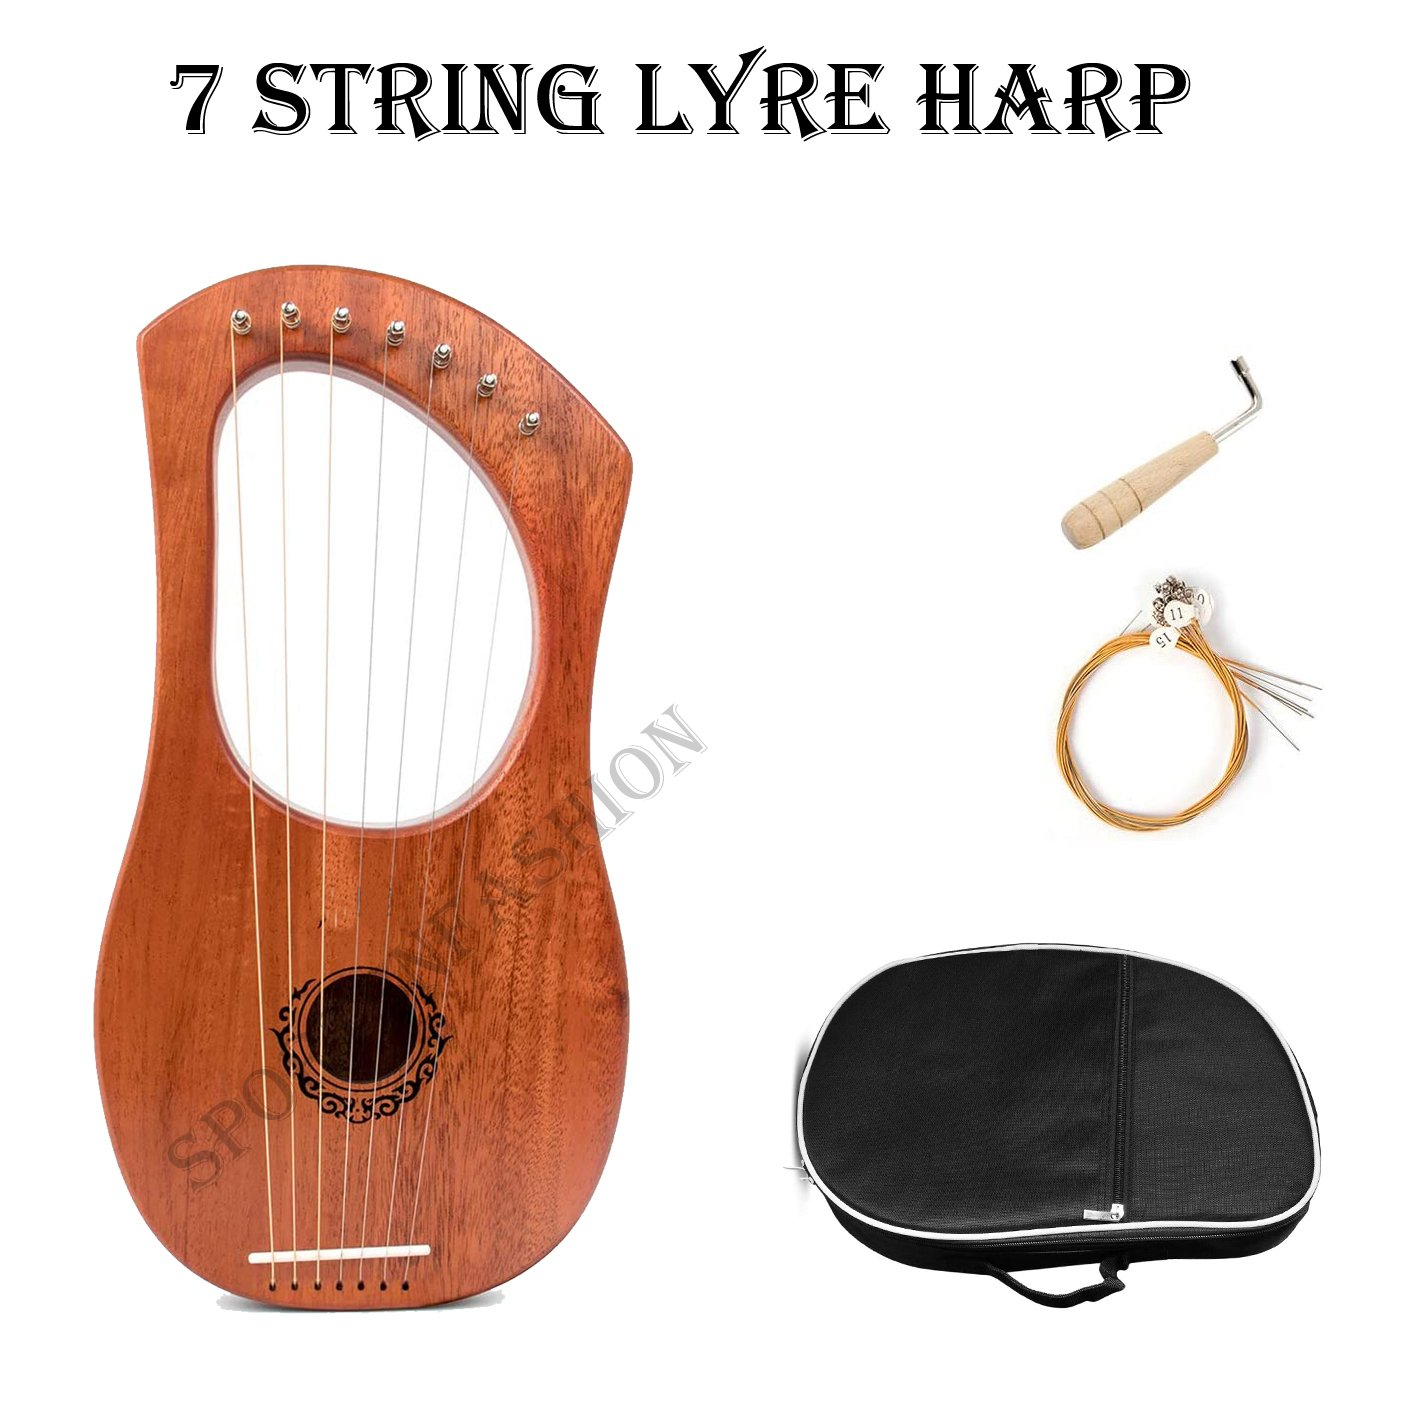 7 string Lyre Harp with Tuning key